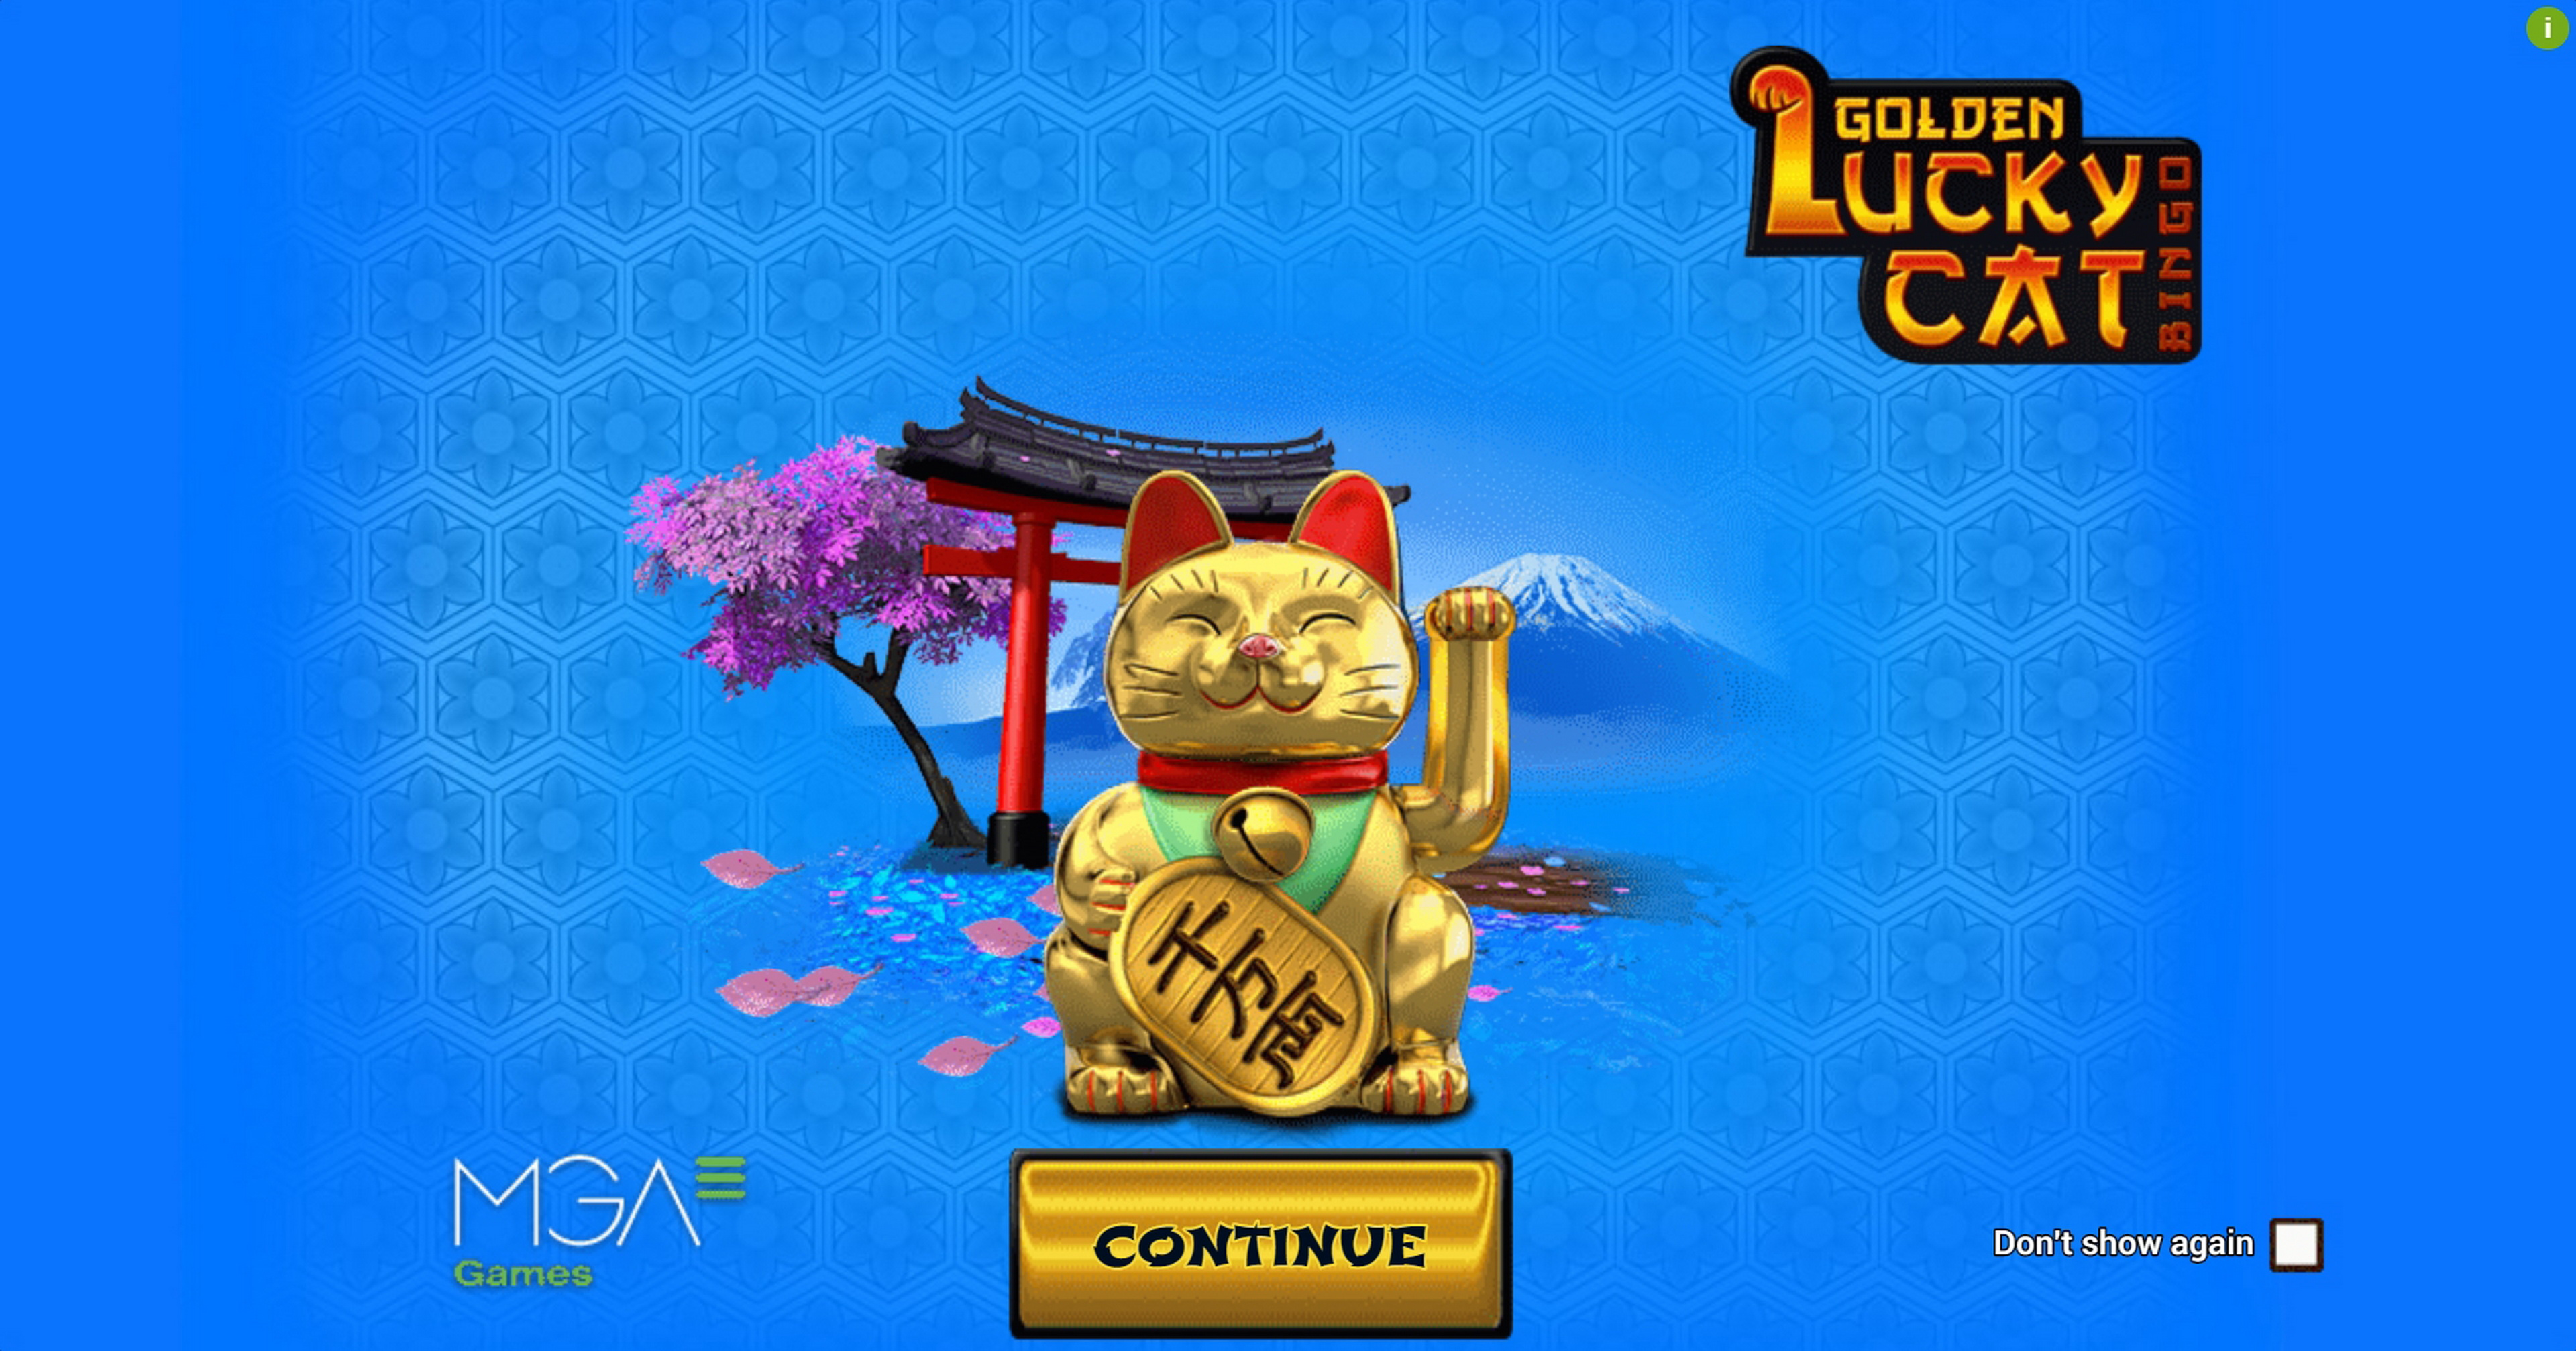 Play Golden Lucky Cat Bingo Free Casino Slot Game by MGA